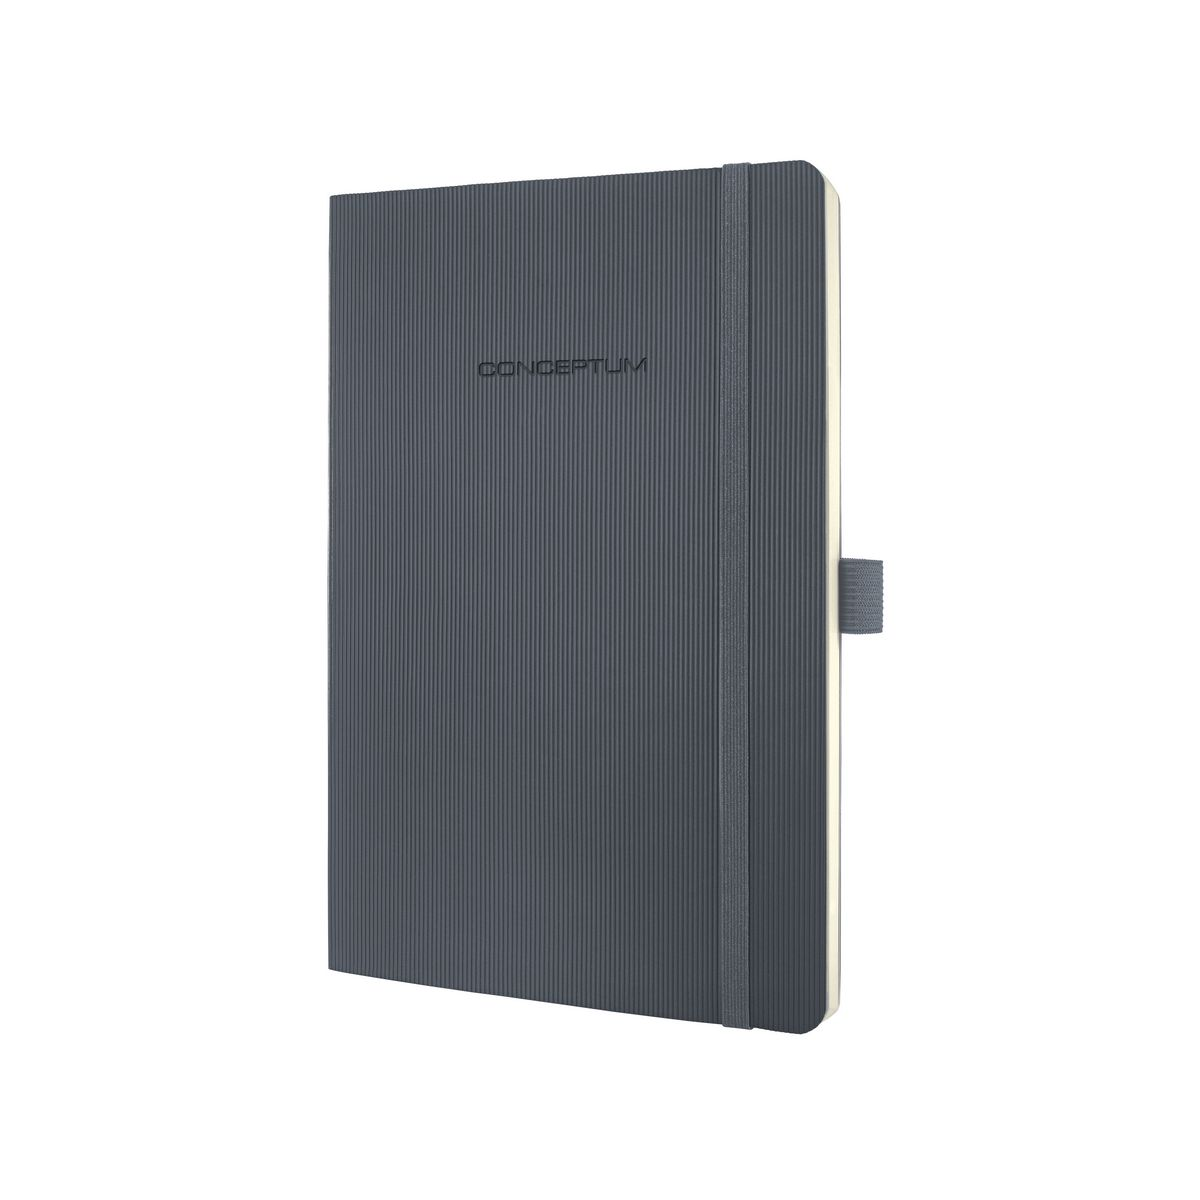 CONCEPTUM Softcover 135x210x14mm GY